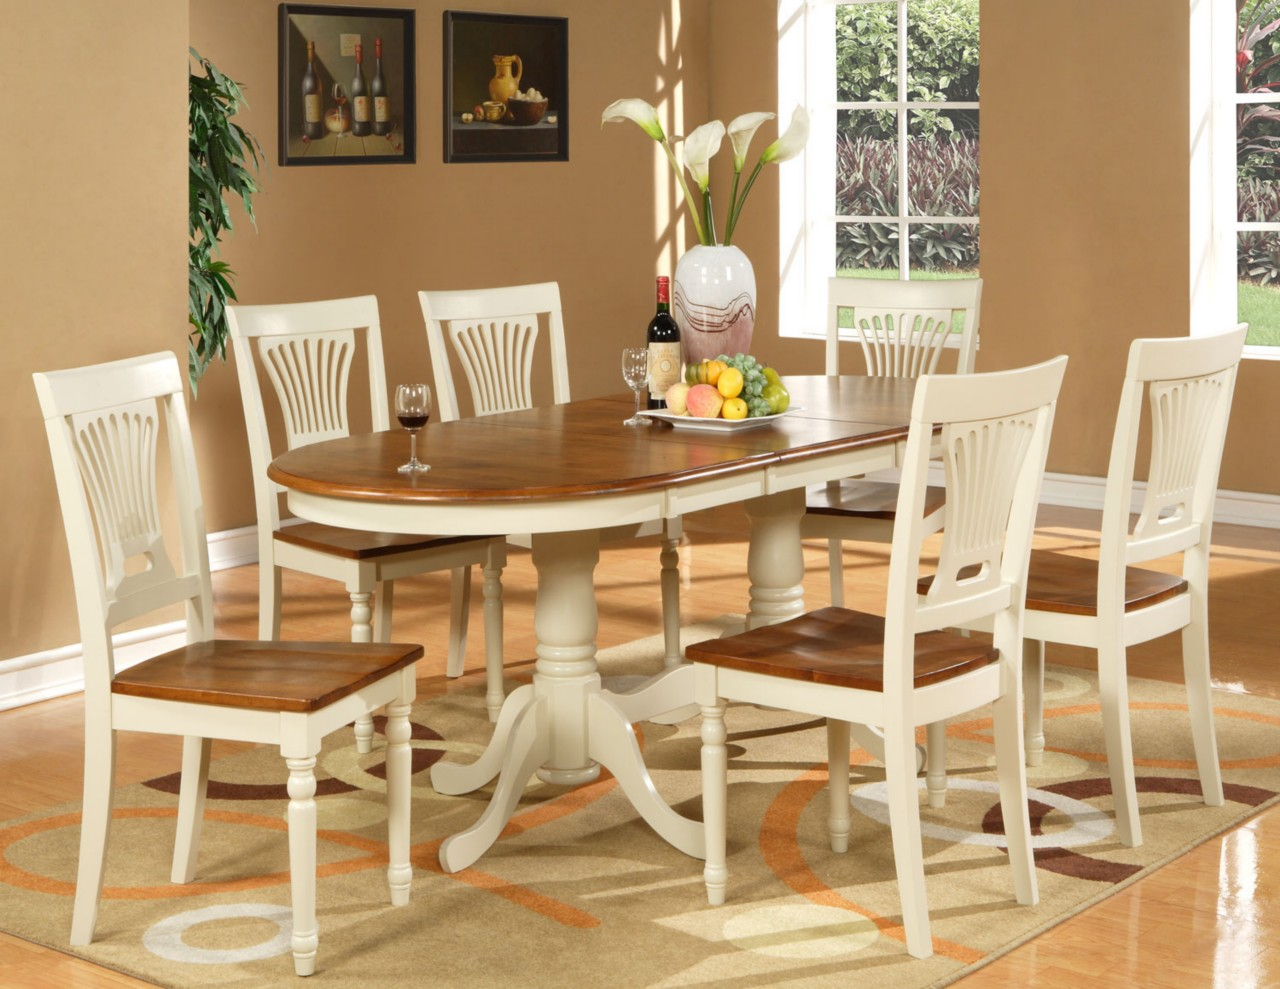 details about 7pc oval dining room set table 6 chairs extension leaf